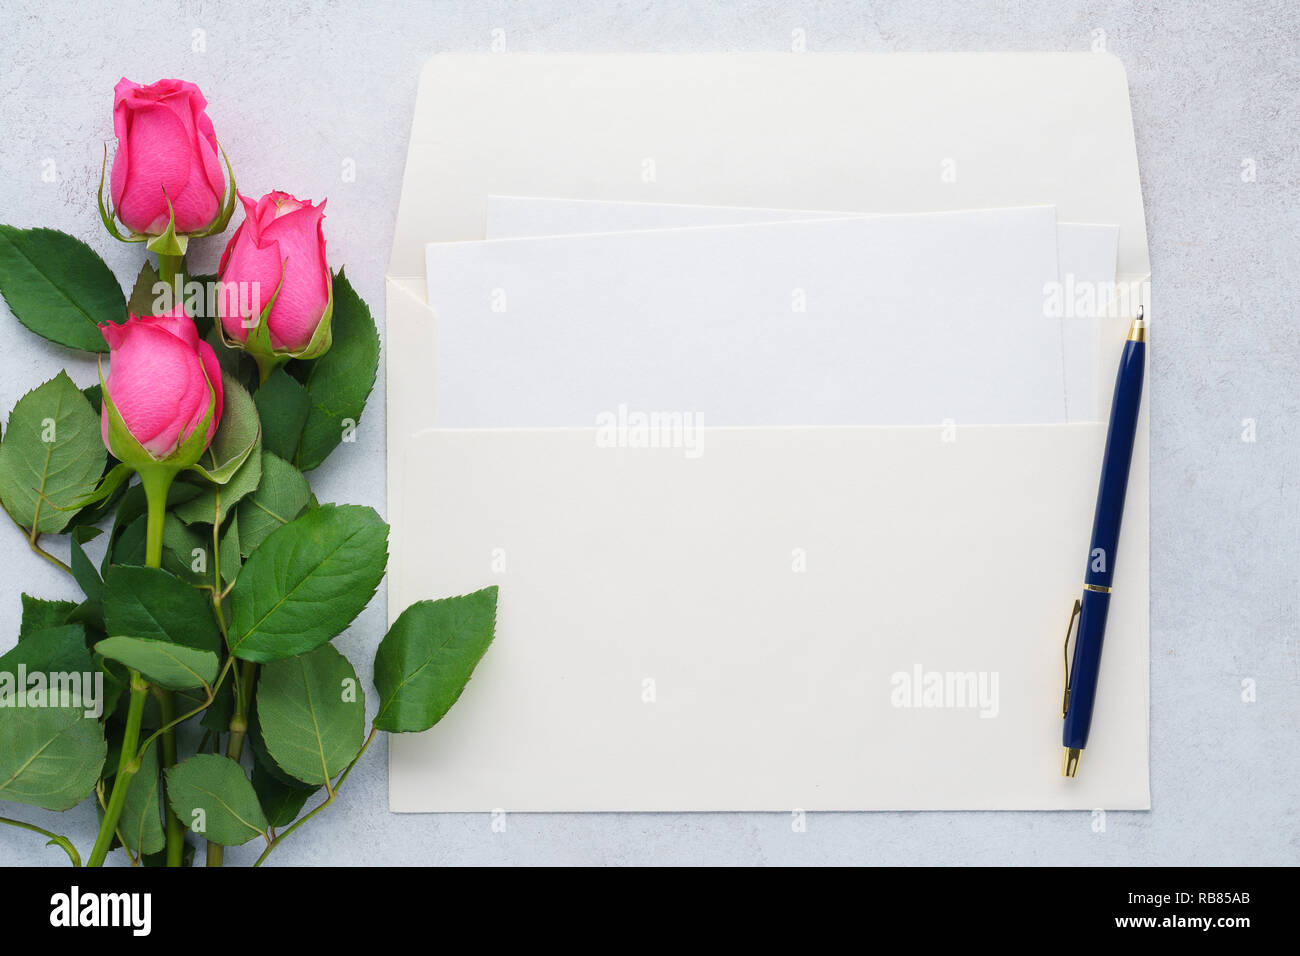 Empty Letter Envelope And A Pen Wedding Invitation Card Or Love